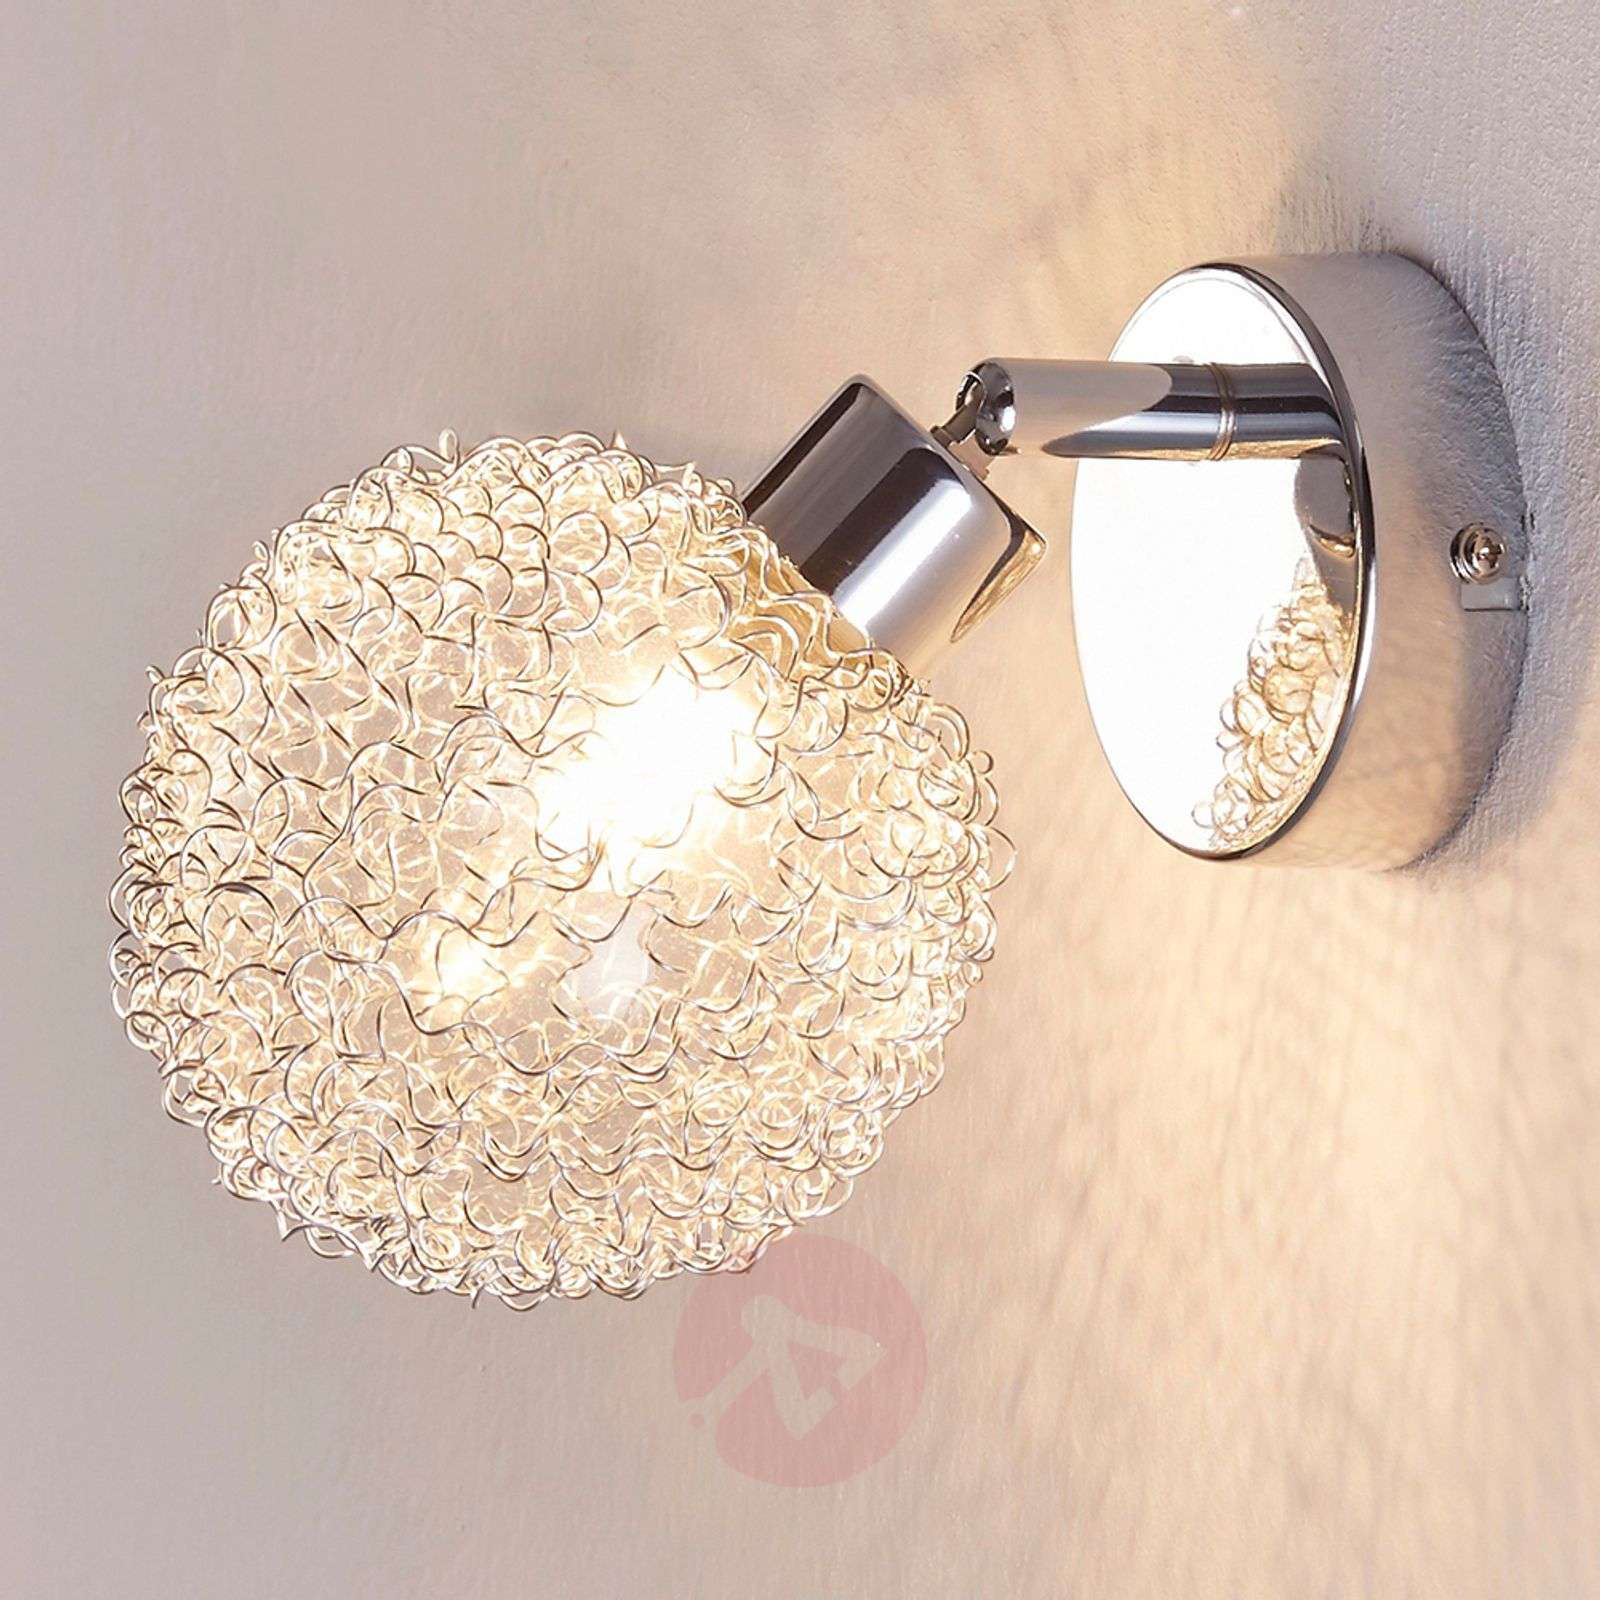 Jolie applique LED Ticino-9620777-02